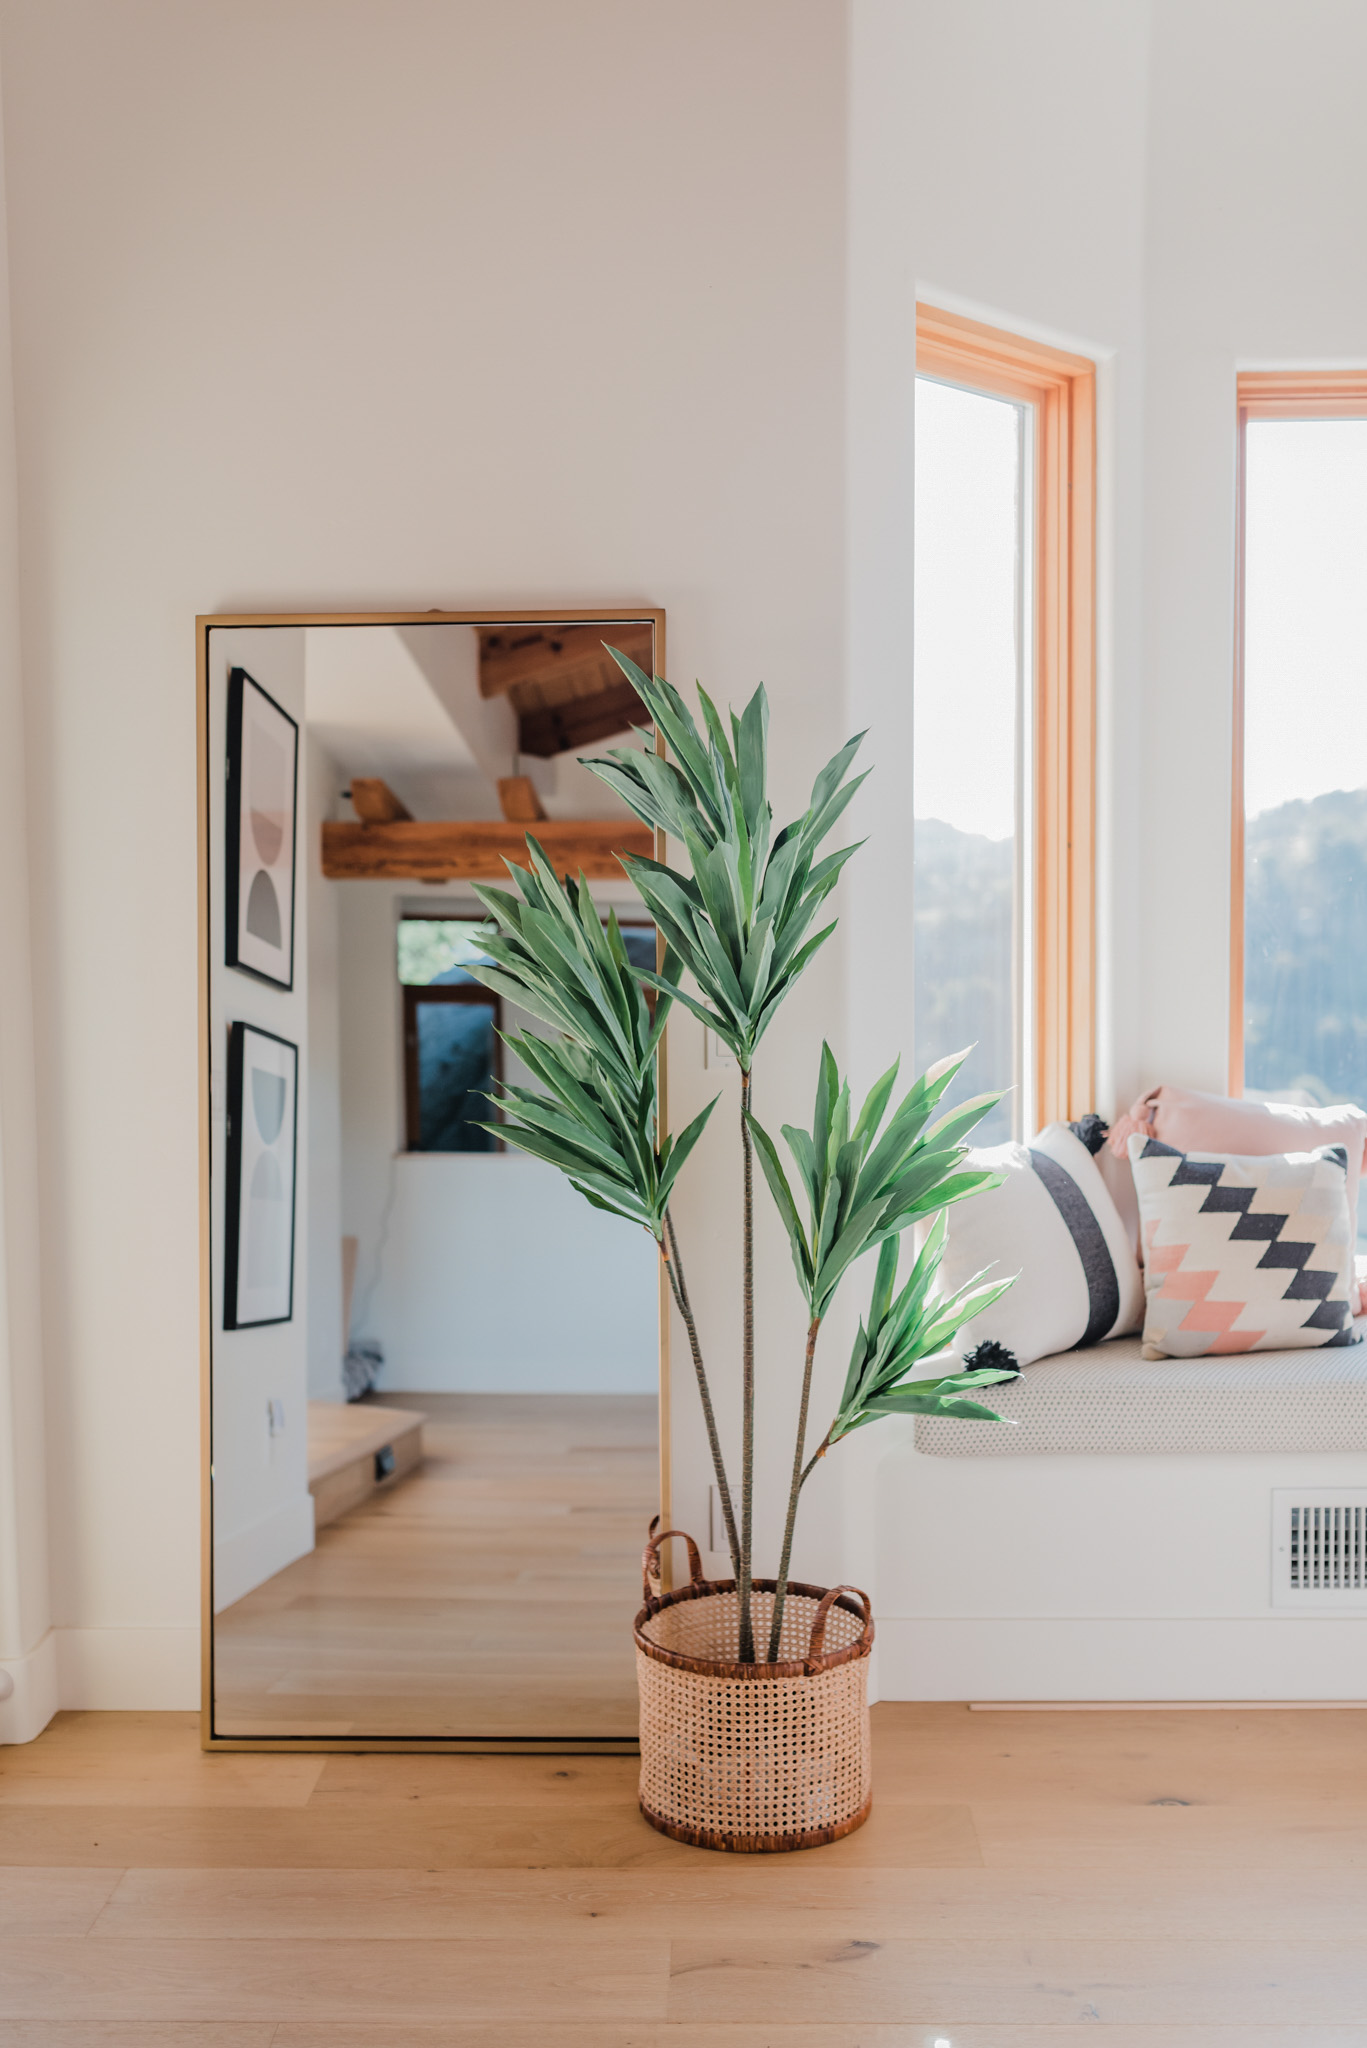 Best Full Length Mirrors by popular San Diego lifestyle blog, Navy Grace: image of a living room with natural light wood floors, a faux floor plant in a wicker basket, and a full length mirror.